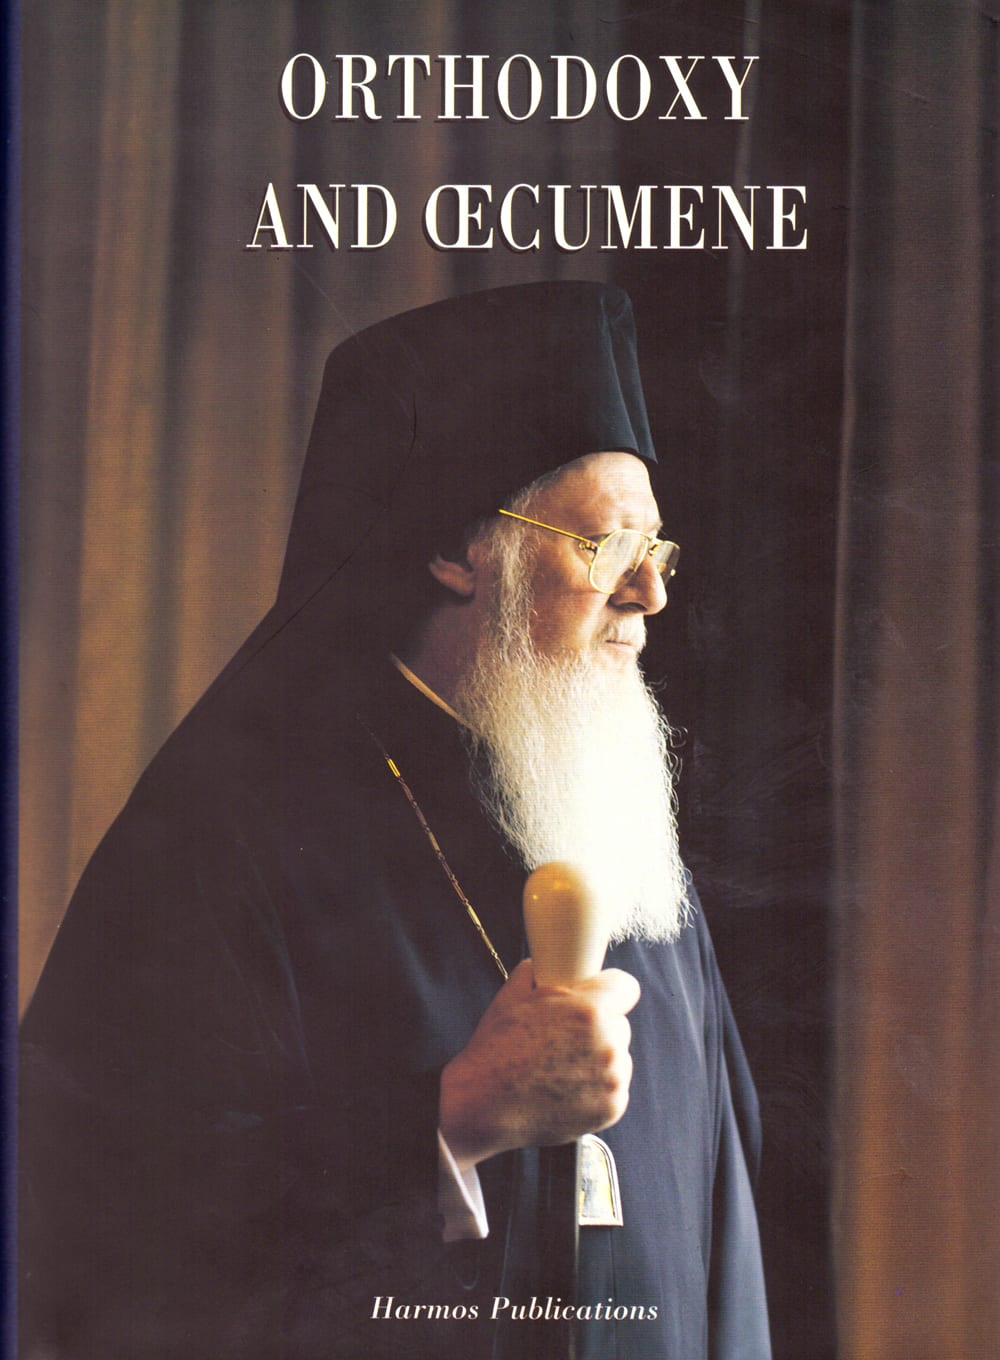 orthodoxy and oecumene syllogiko